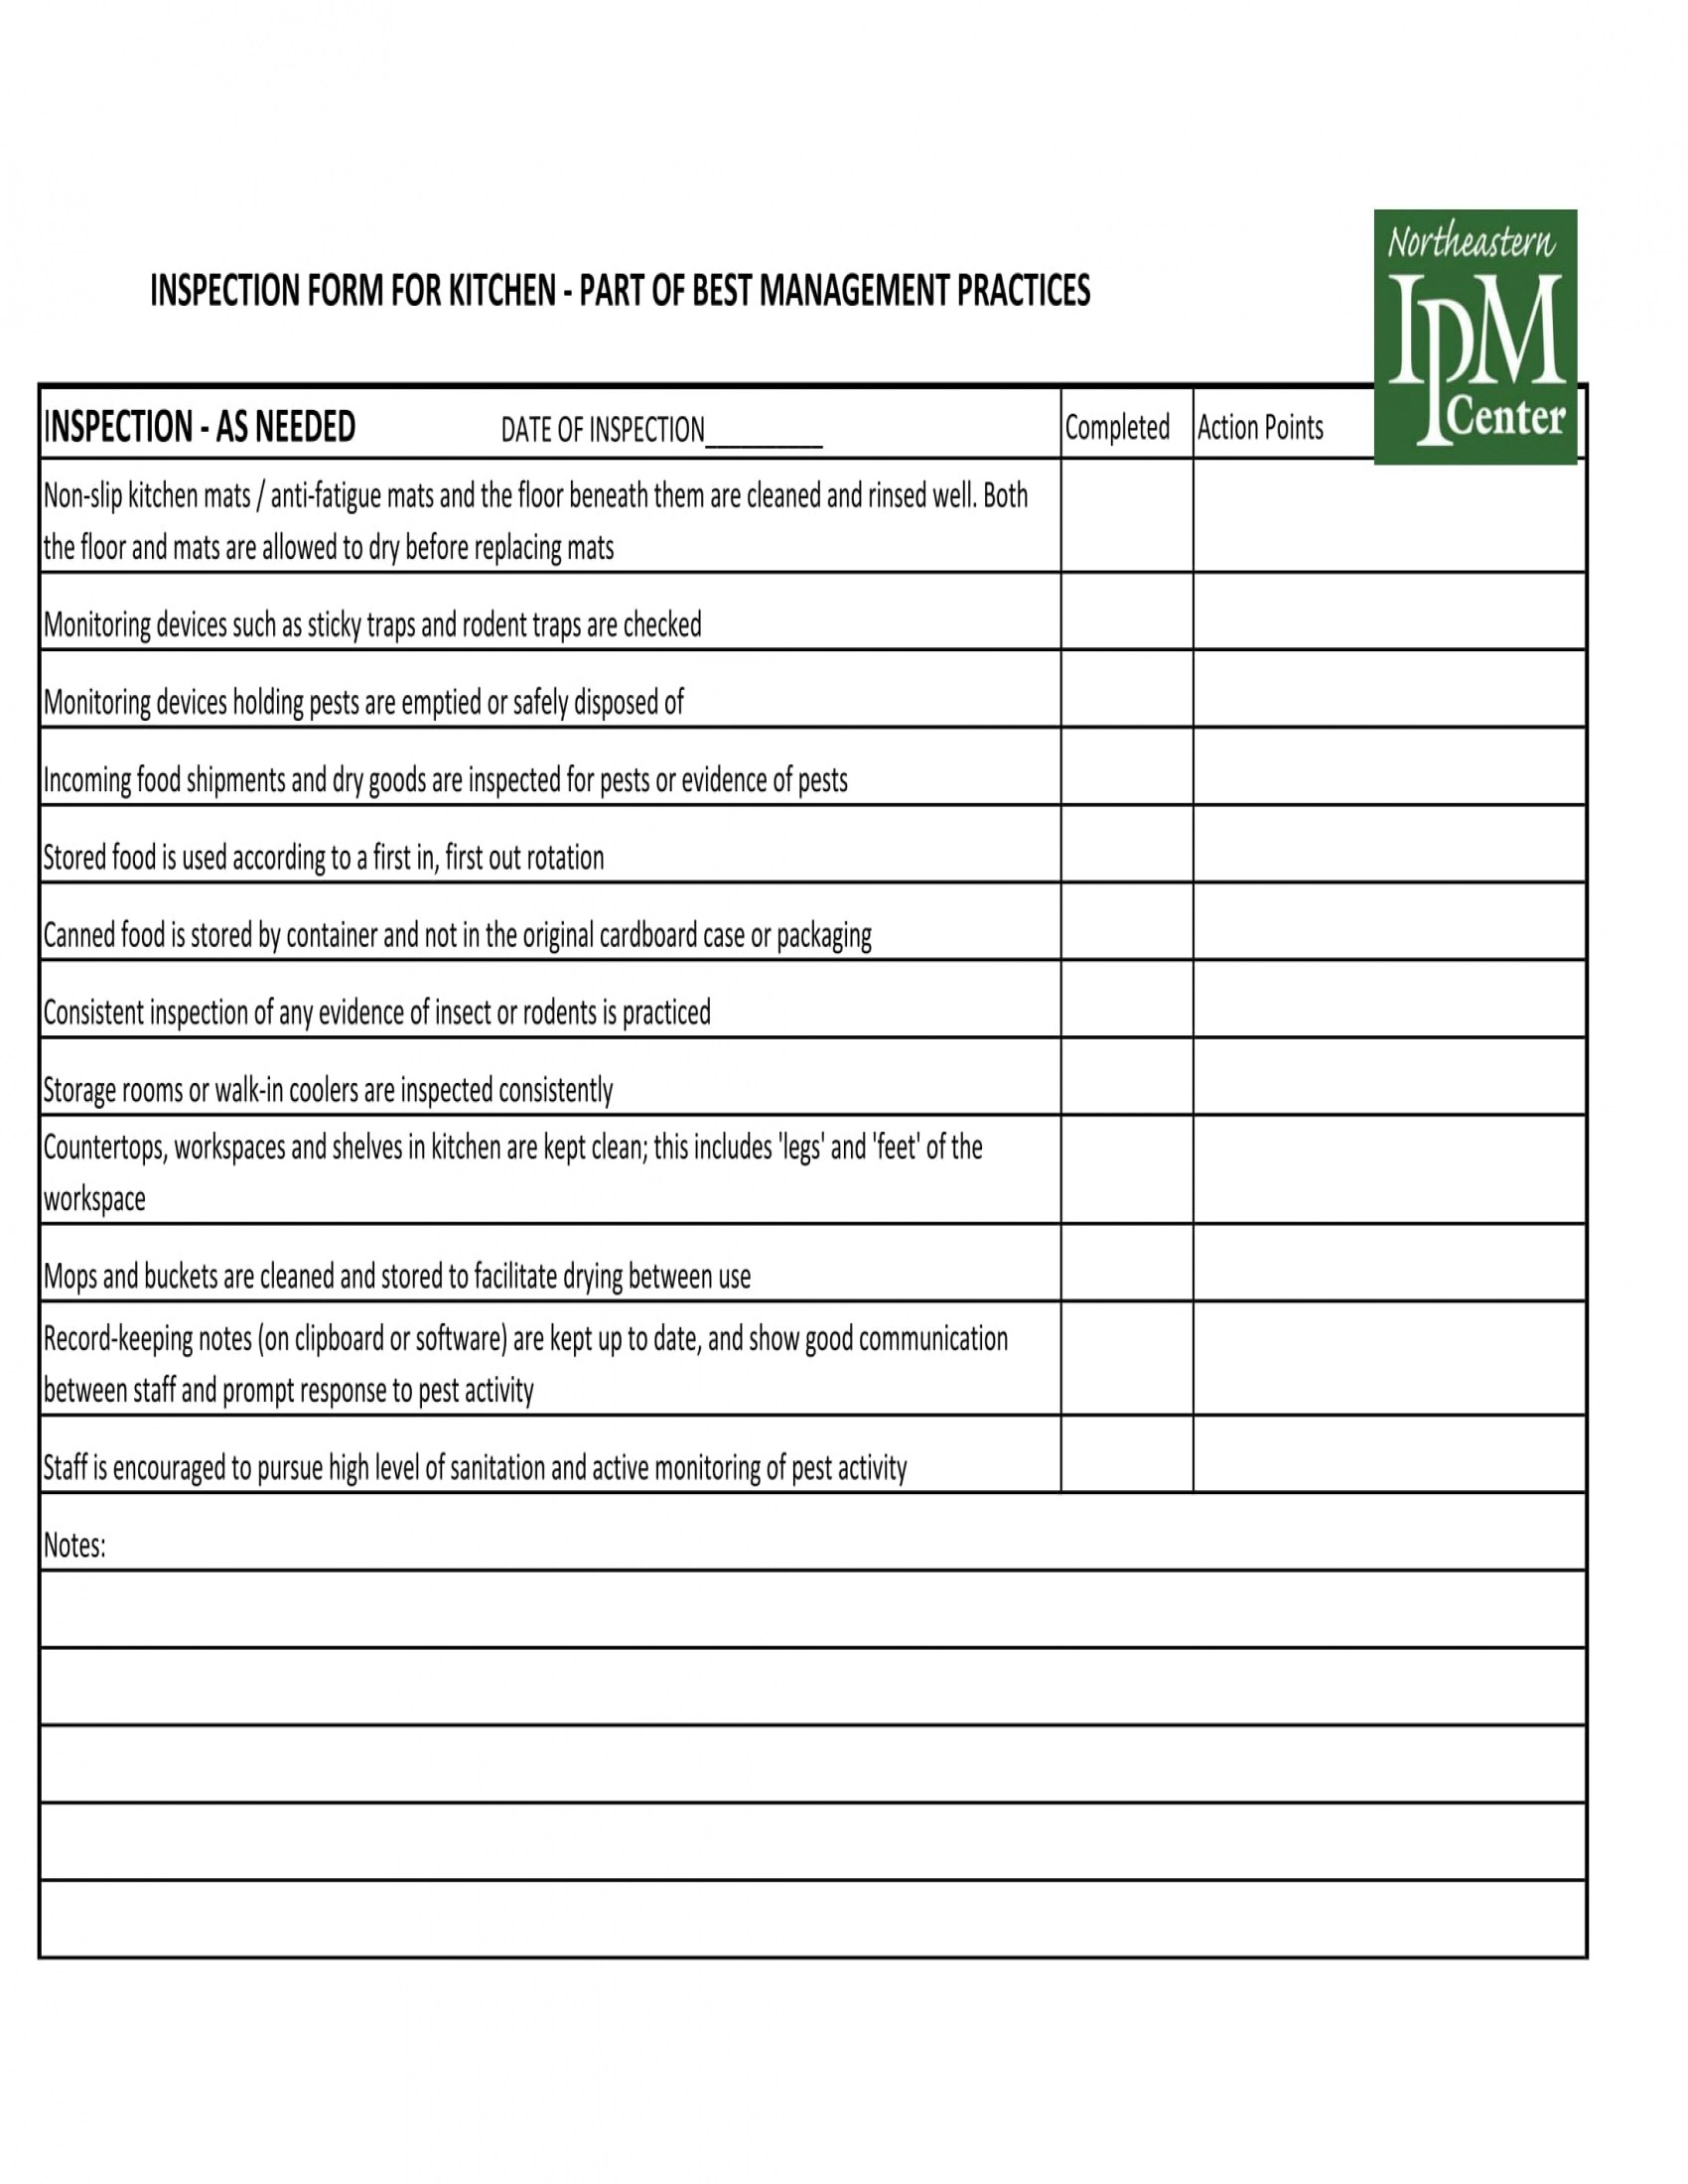 Free 8 Kitchen Management Forms In Word